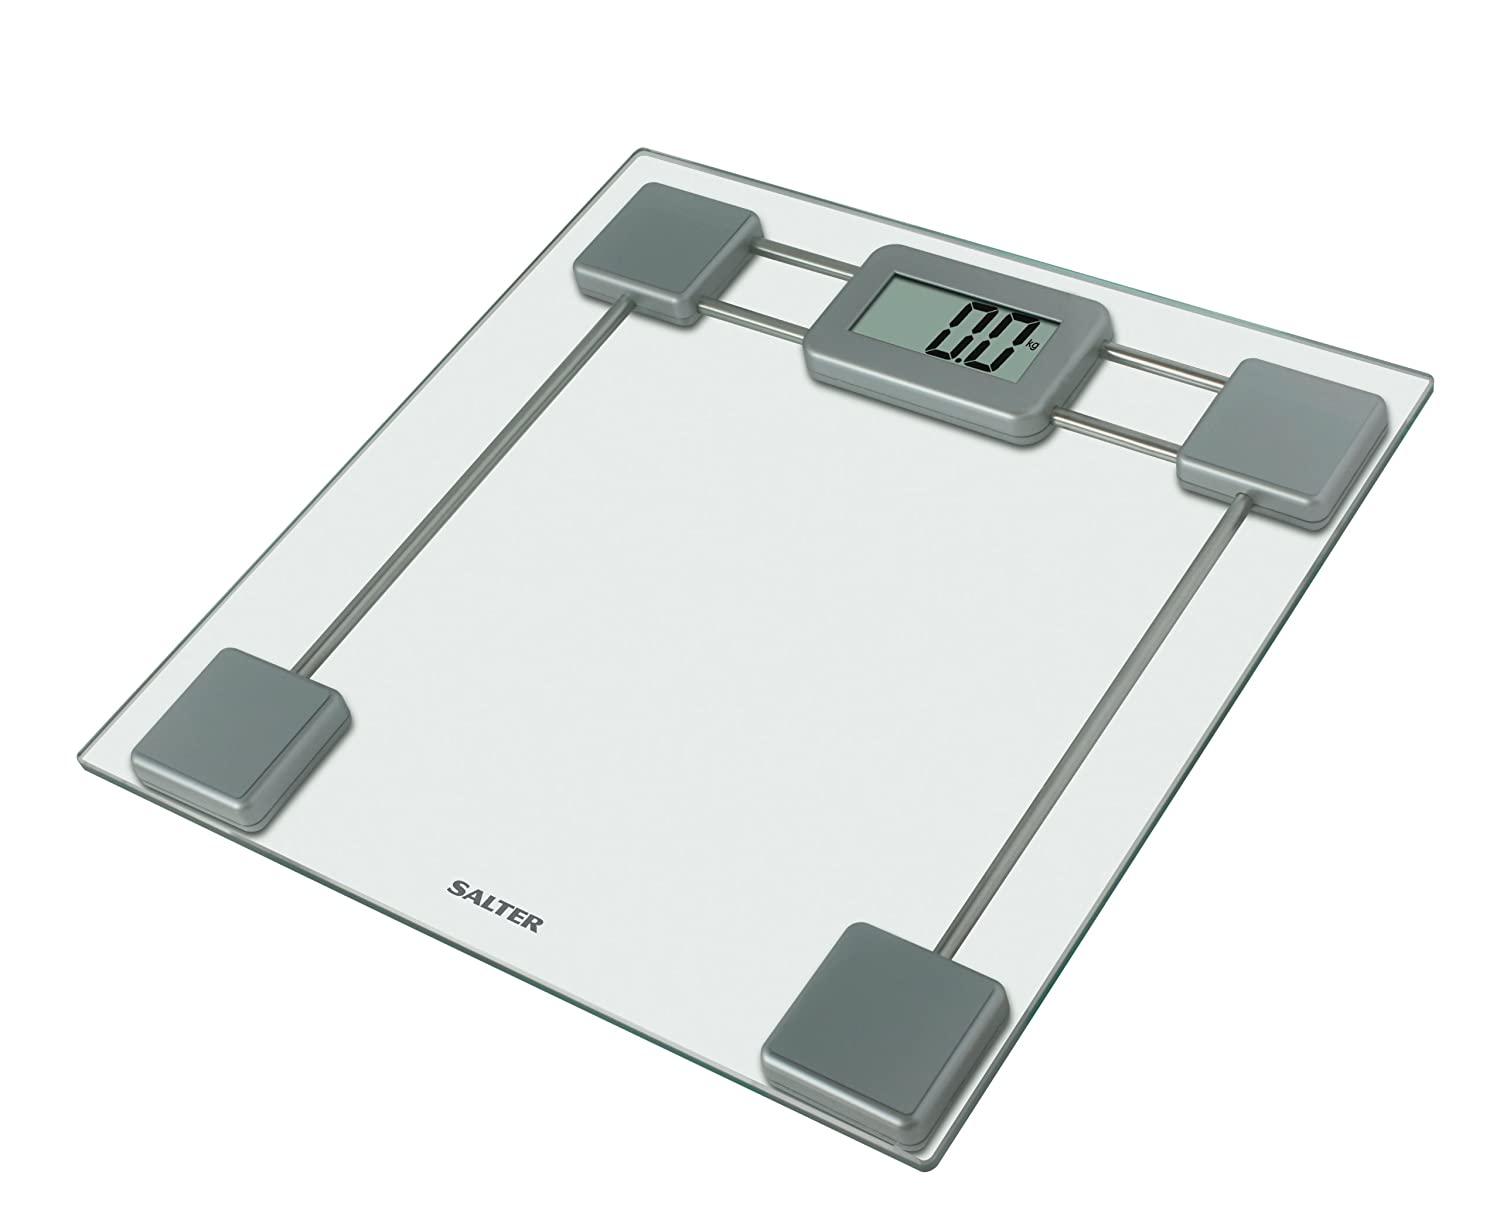 Salter Glass Digital Bathroom Scales  Electronic Body Weighing In Kg Or  St,0.1kg /1/4 Lb Increments,Toughened Platform,Easy Read Display,Step On  Feature For ...